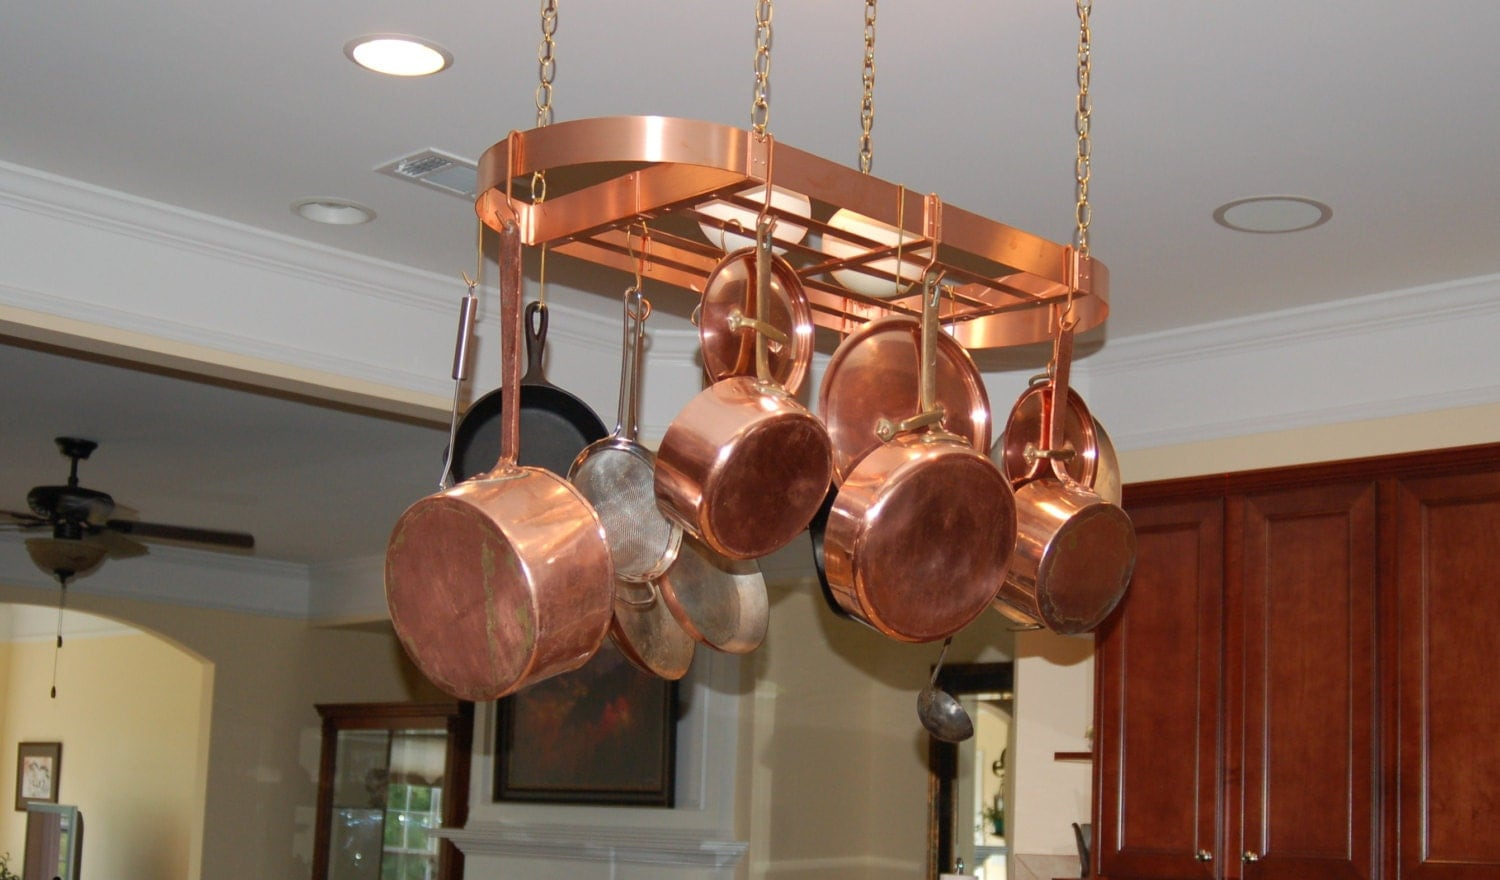 32x12 inch Handmade Hanging Copper Pot Rack Oval with